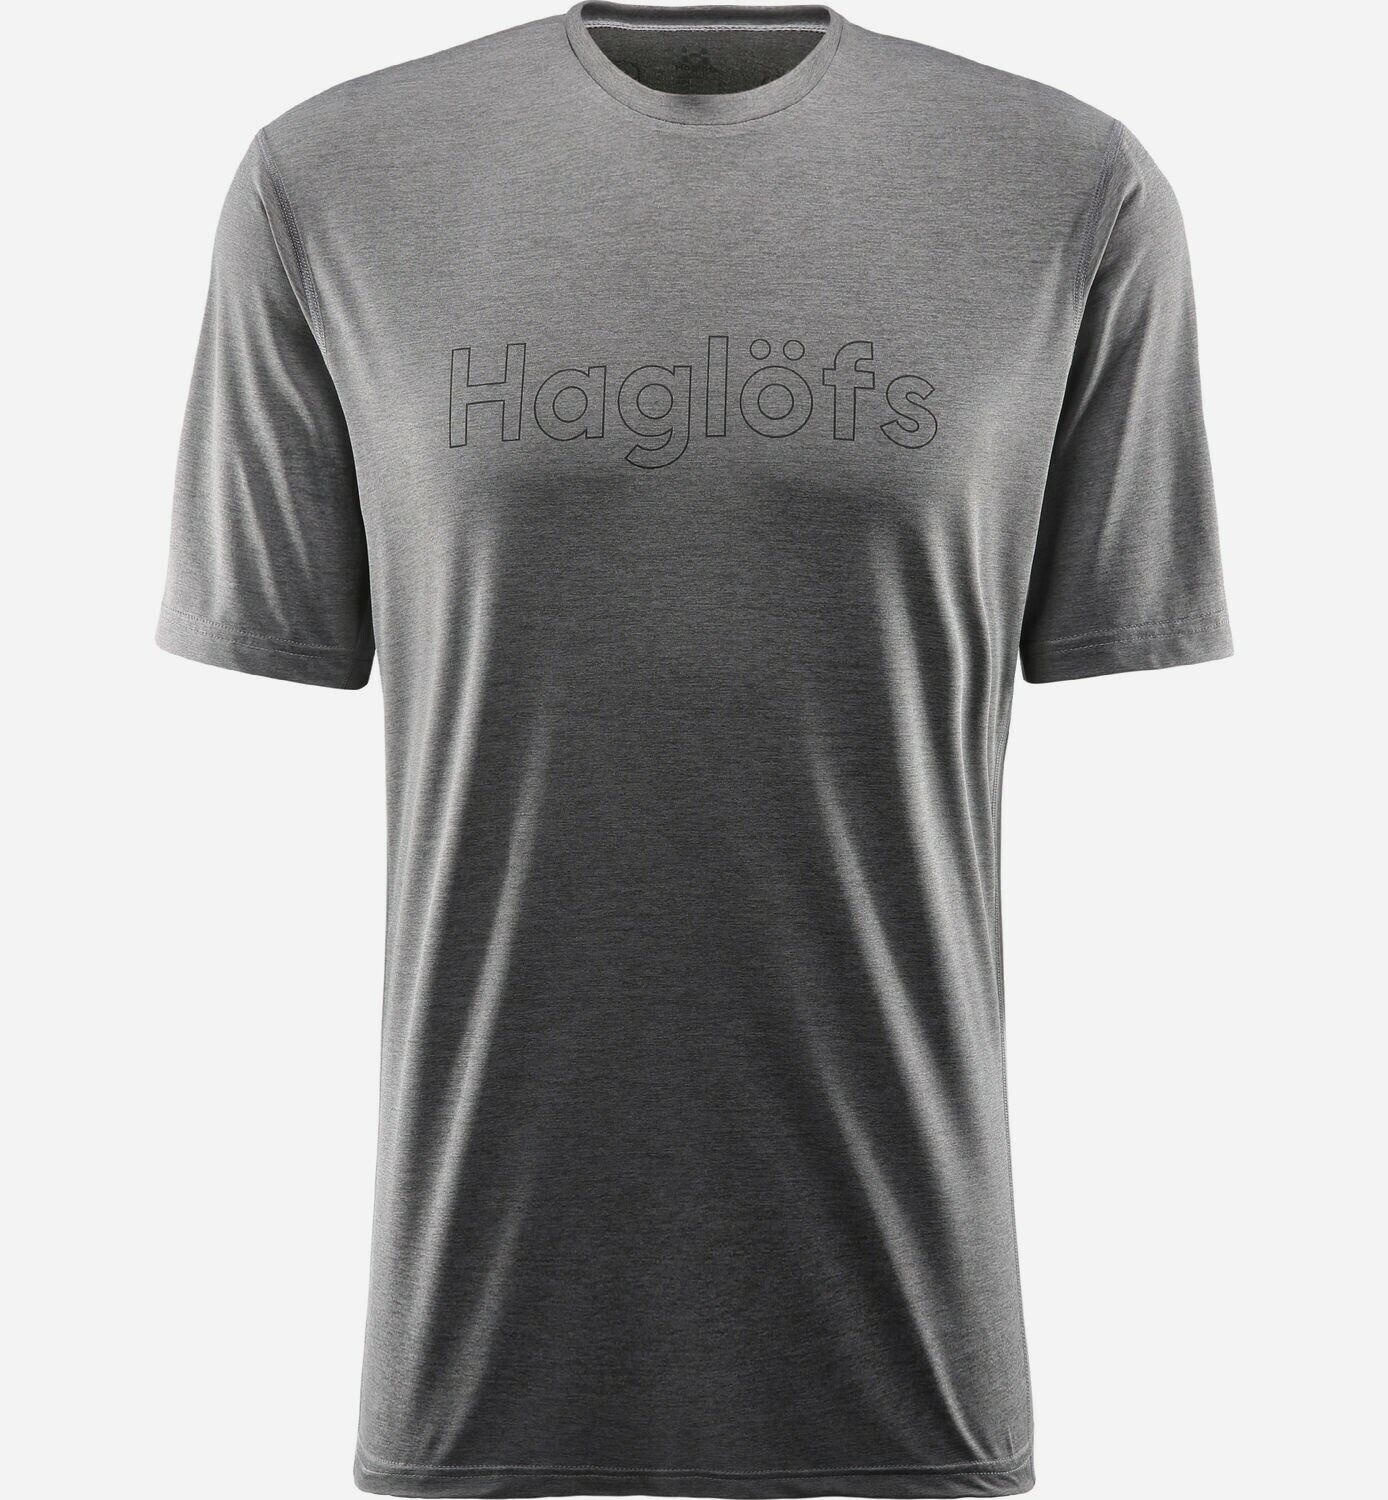 Haglöfs Ridge Tee  Men Very Light Function Shirt Mens Magnetite  we offer various famous brand